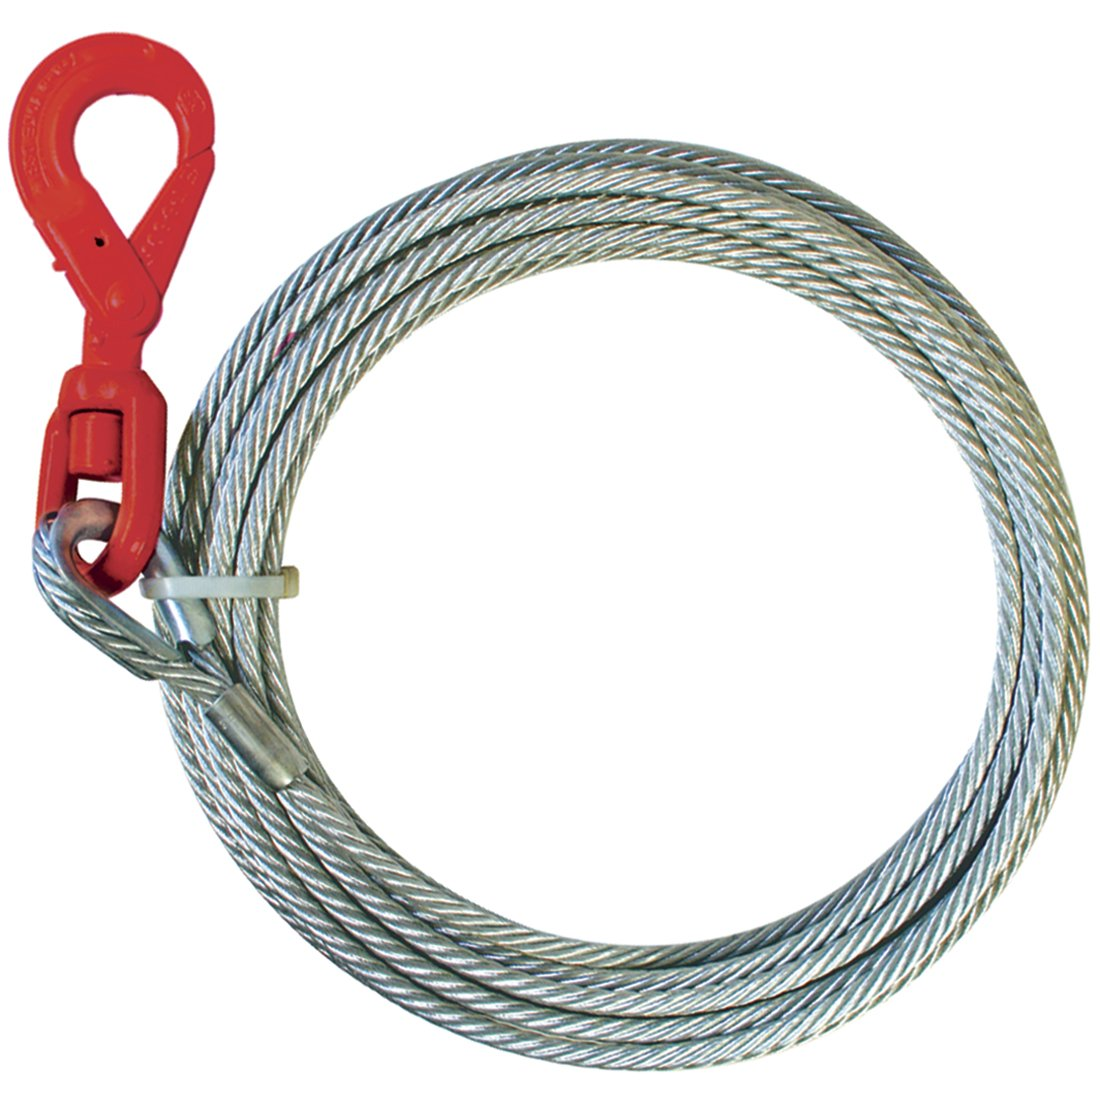 Vulcan Classic Galvanized Steel Core Winch Cable With Self-Locking Swivel Hook - 15,100 lbs. Minimum Breaking Strength (3/8'' x 100')